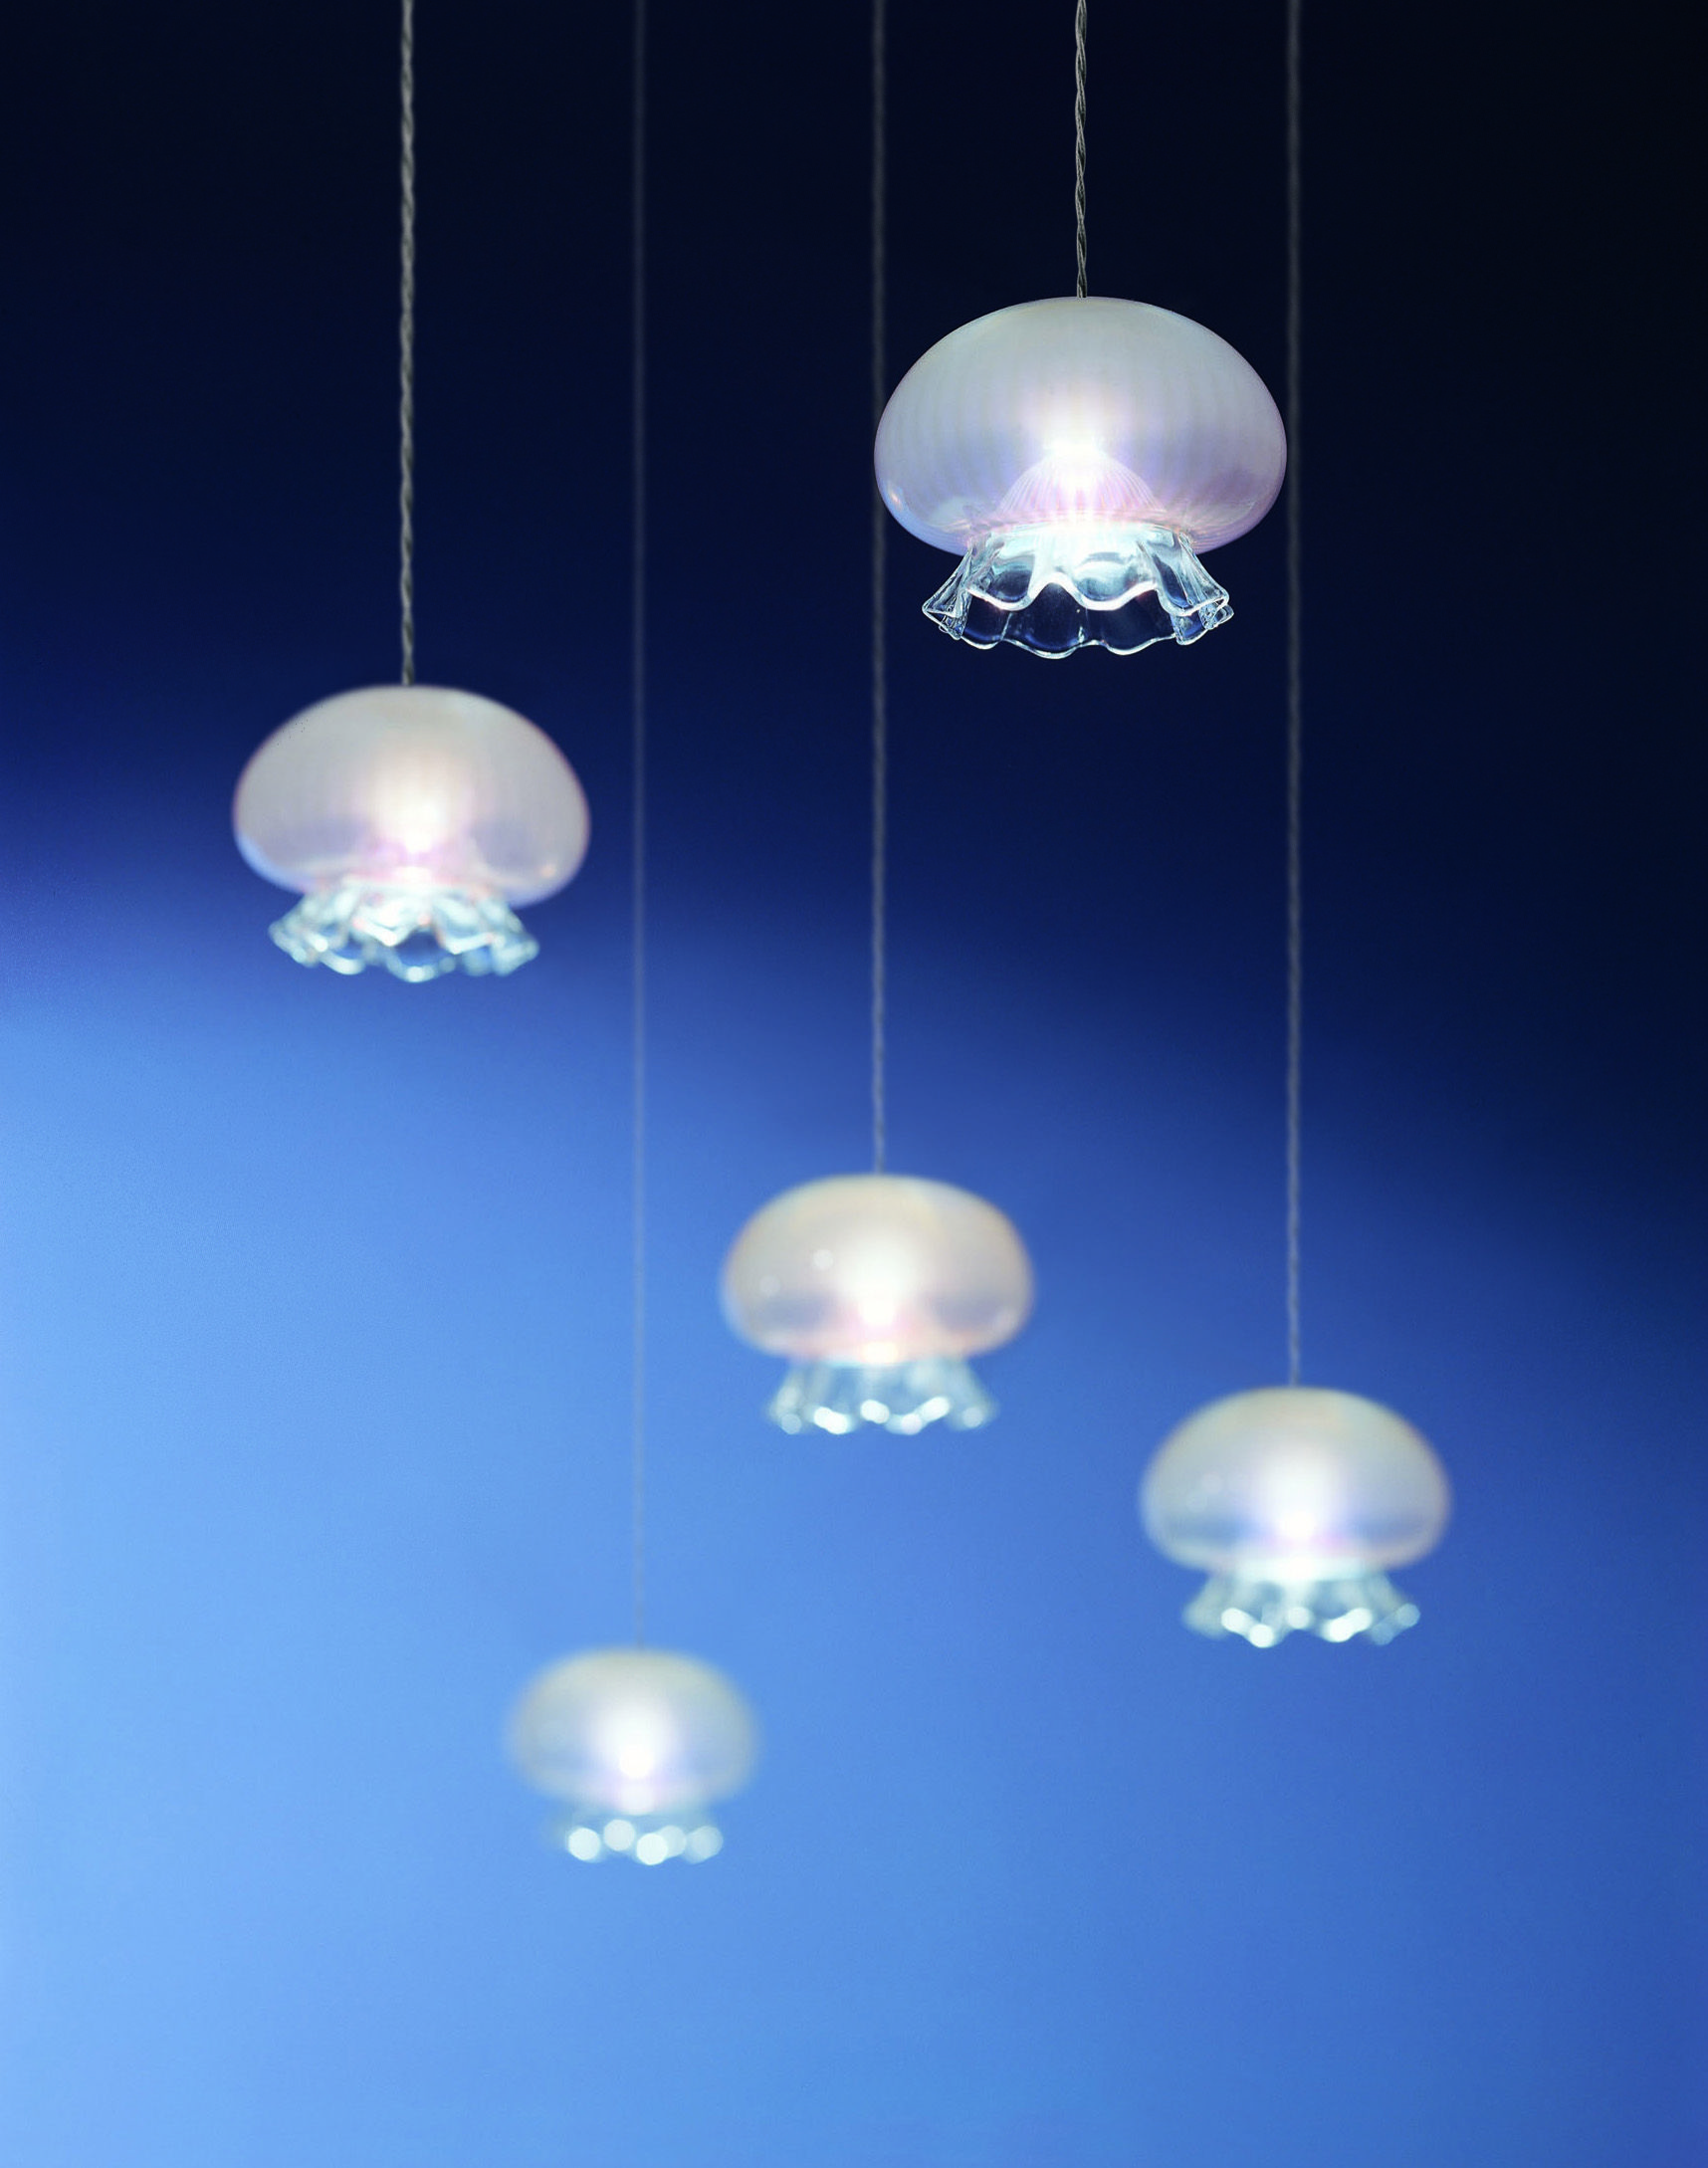 Our designer pepe tanzi is often inspired by nature take a look at our designer pepe tanzi is often inspired by nature take a look at our medusina jelly fish lighting fixture in handshaped blown glass arubaitofo Image collections